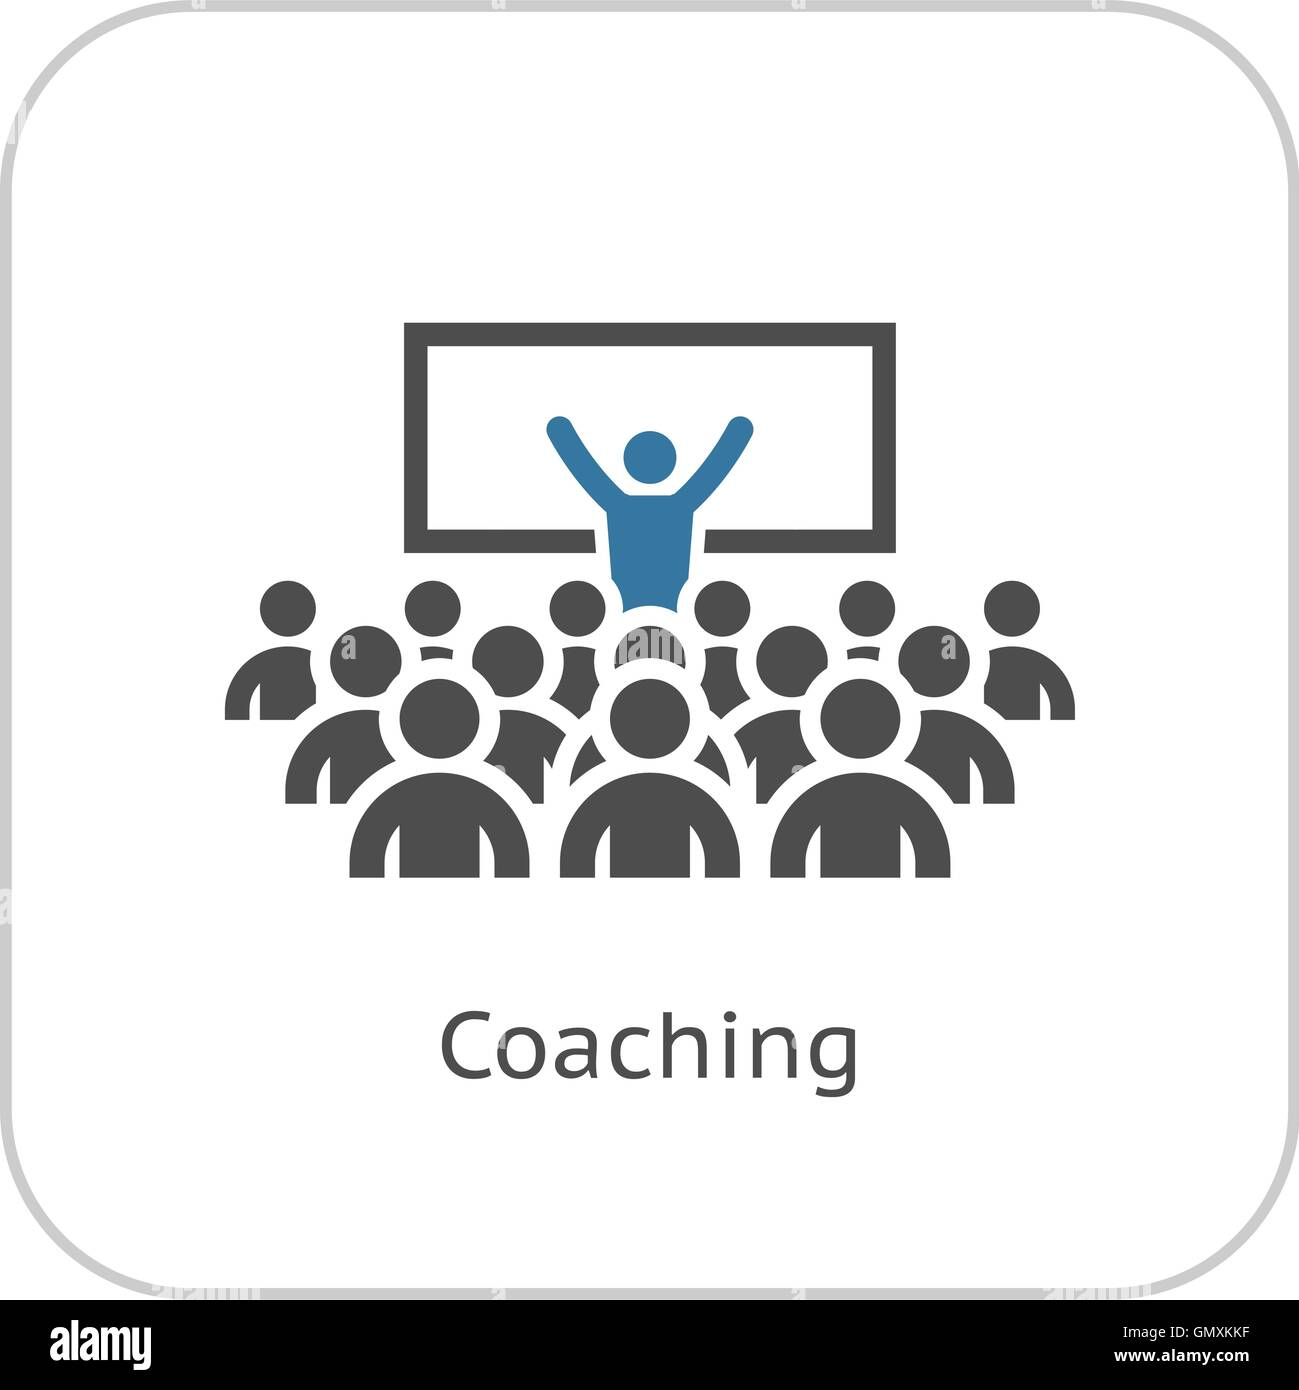 coaching icon business concept stock vector art illustration